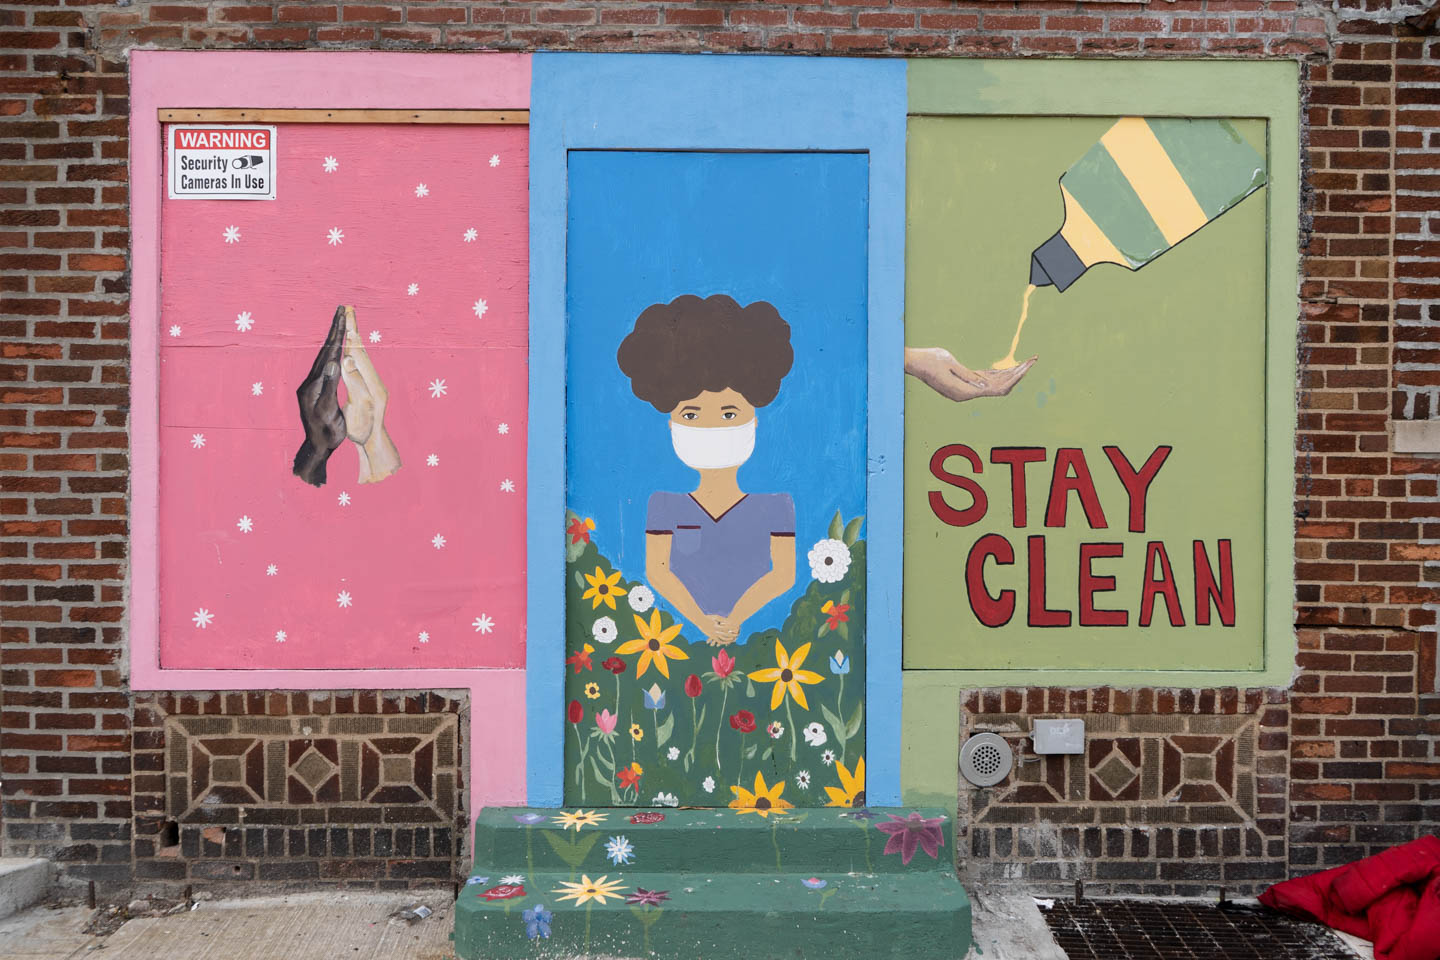 September 16, 2020: Mural giving advice to prevent the spread of COVID-19, Chestnut Street at Pitkin Avenue, Brooklyn, New York. © Camilo José Vergara